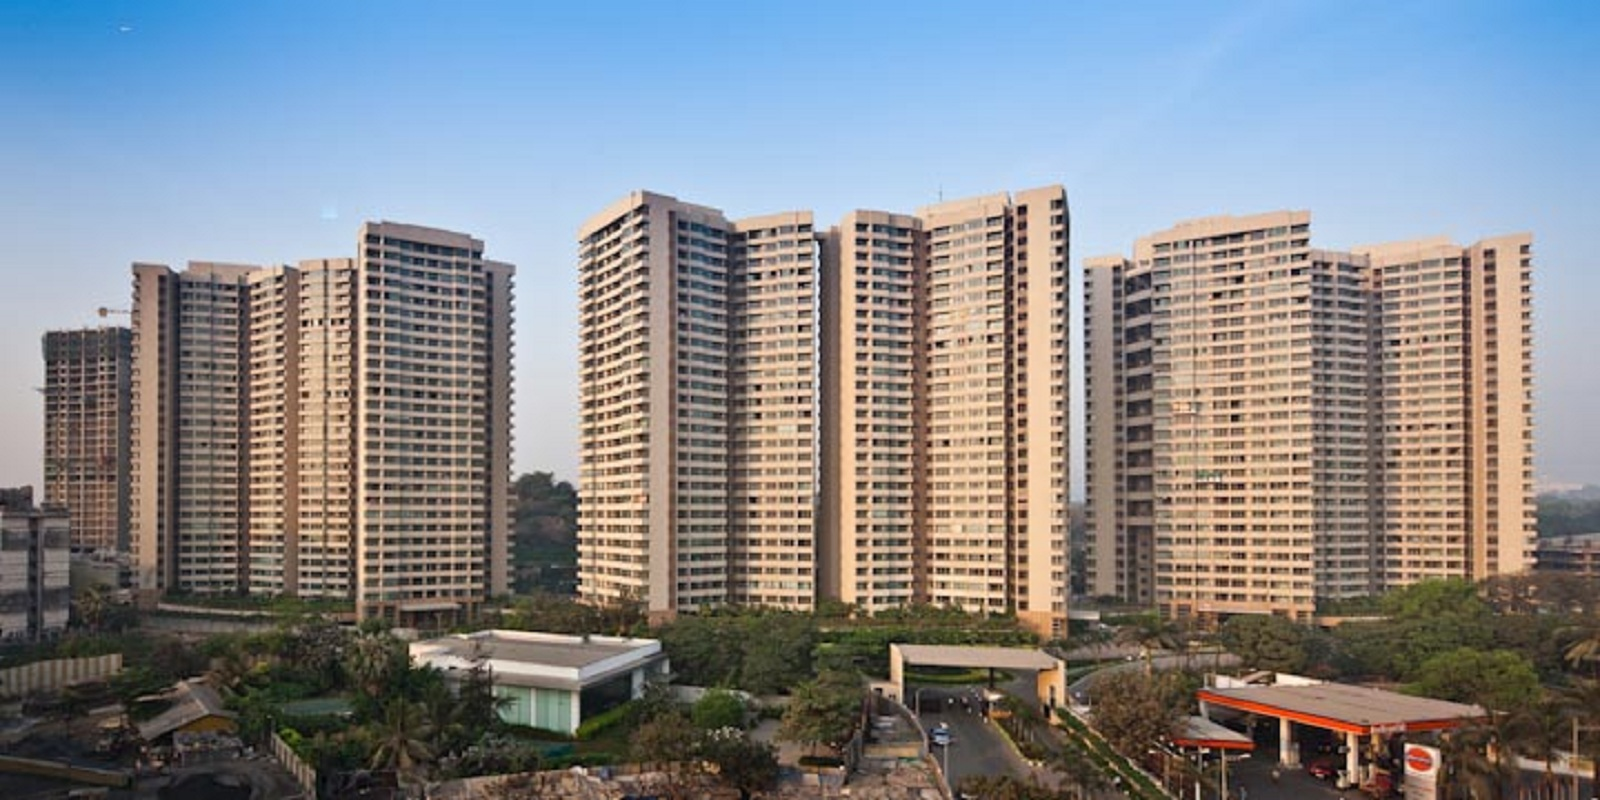 oberoi realty splendor project project large image1